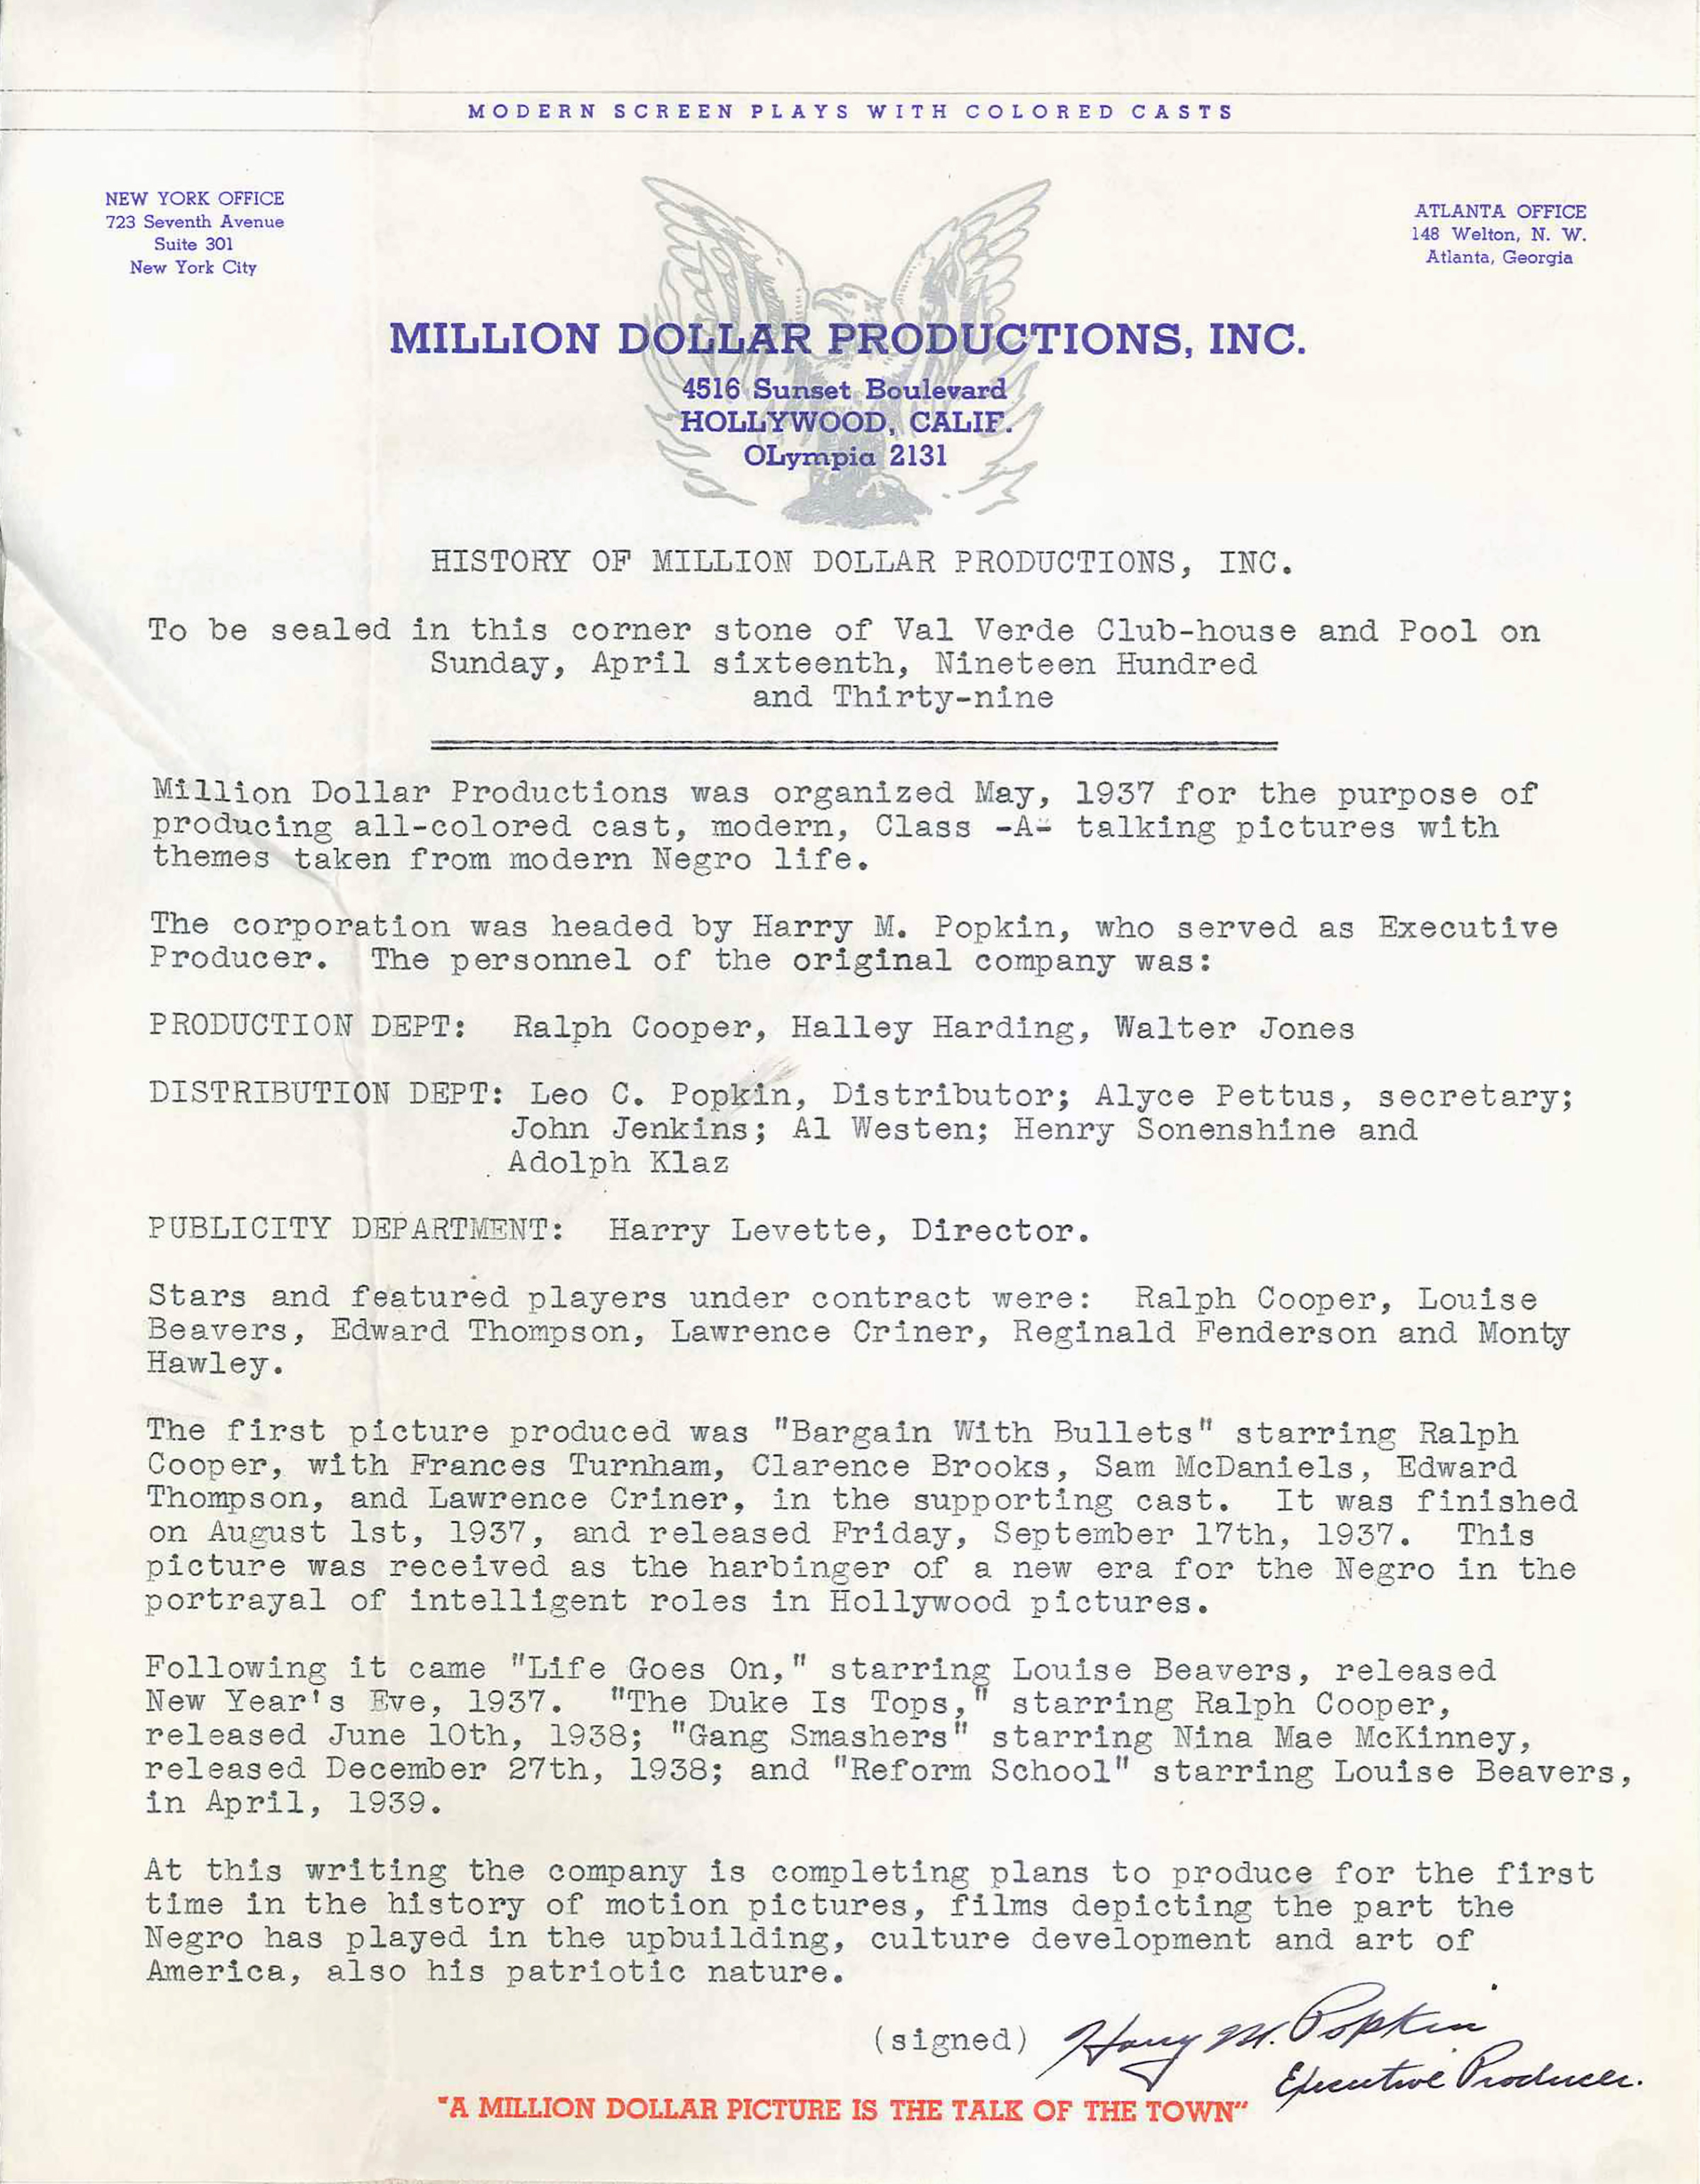 scvhistorycom cp3908 val verde history of million dollar productions written for cornerstone time capsule 4 16 1939